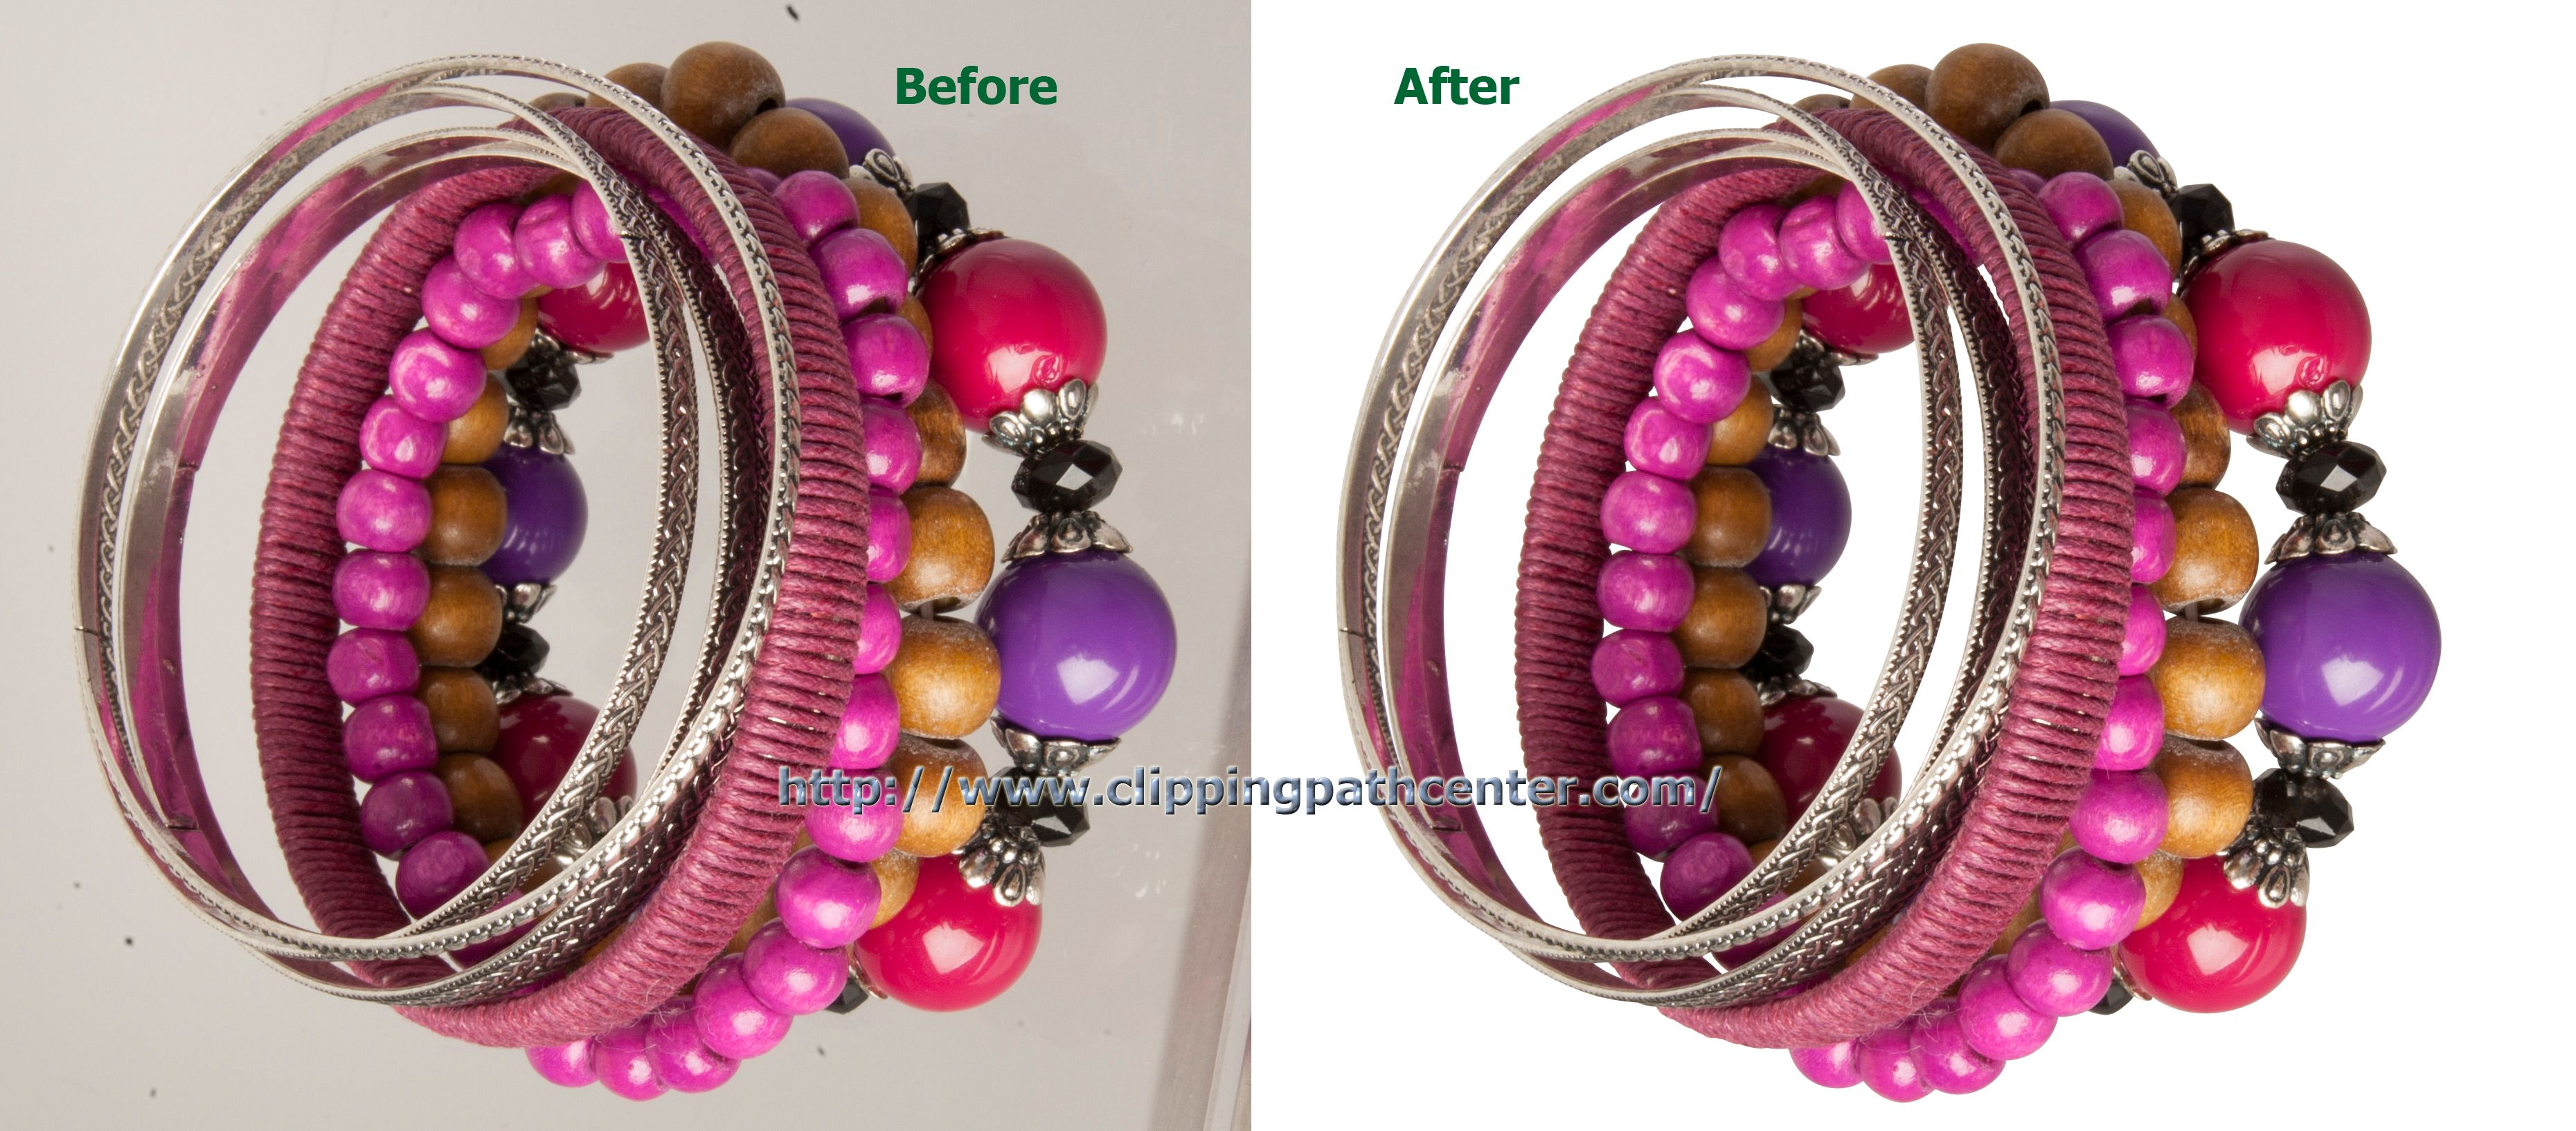 Clipping Path Services Of Please